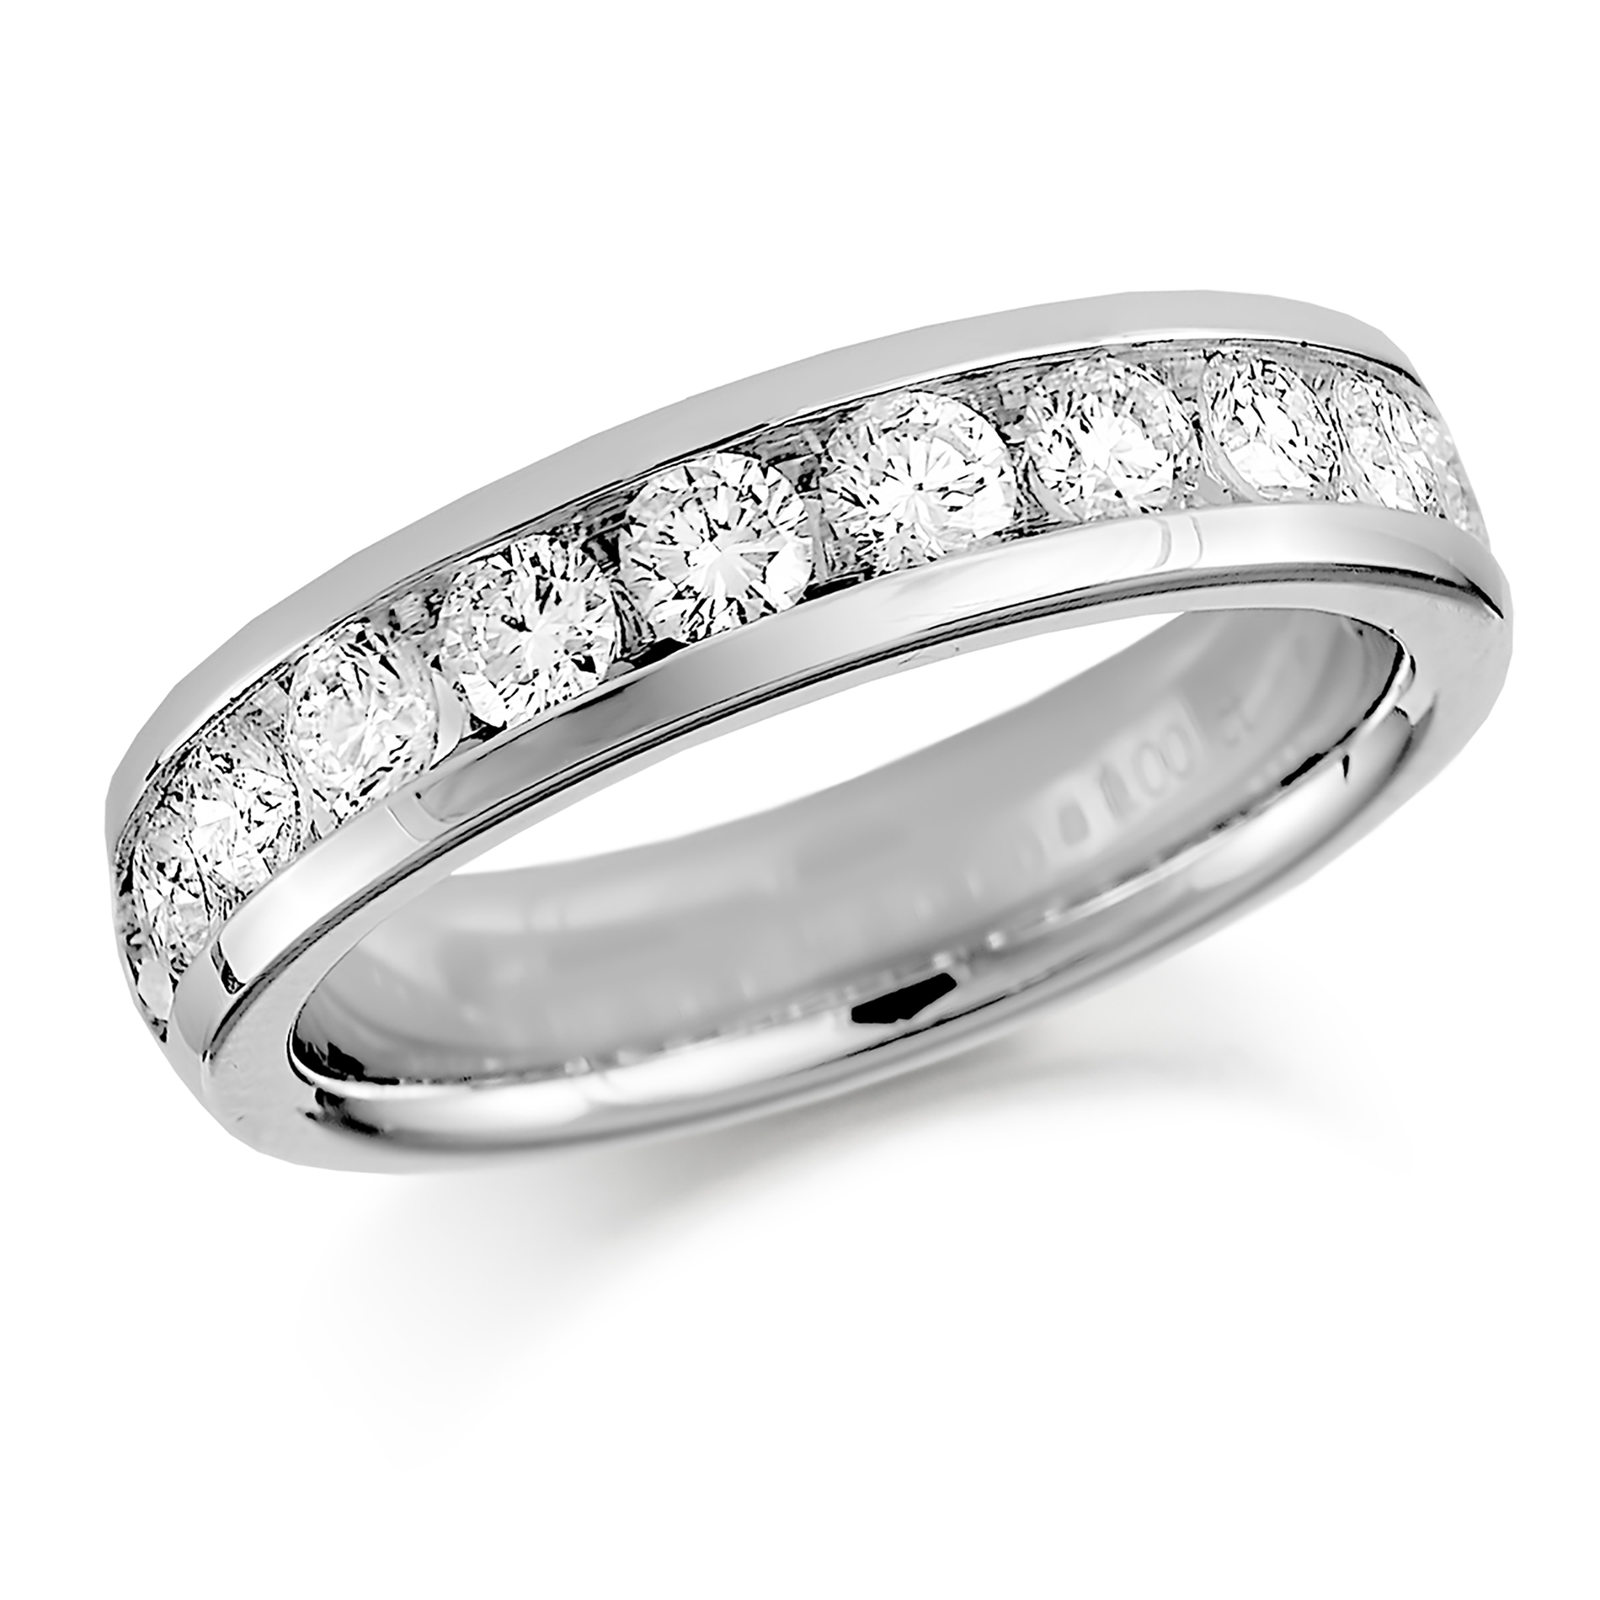 in cut scale ring round crop beers classic product de platinum rings engagement false upscale diamond subsampling db shop